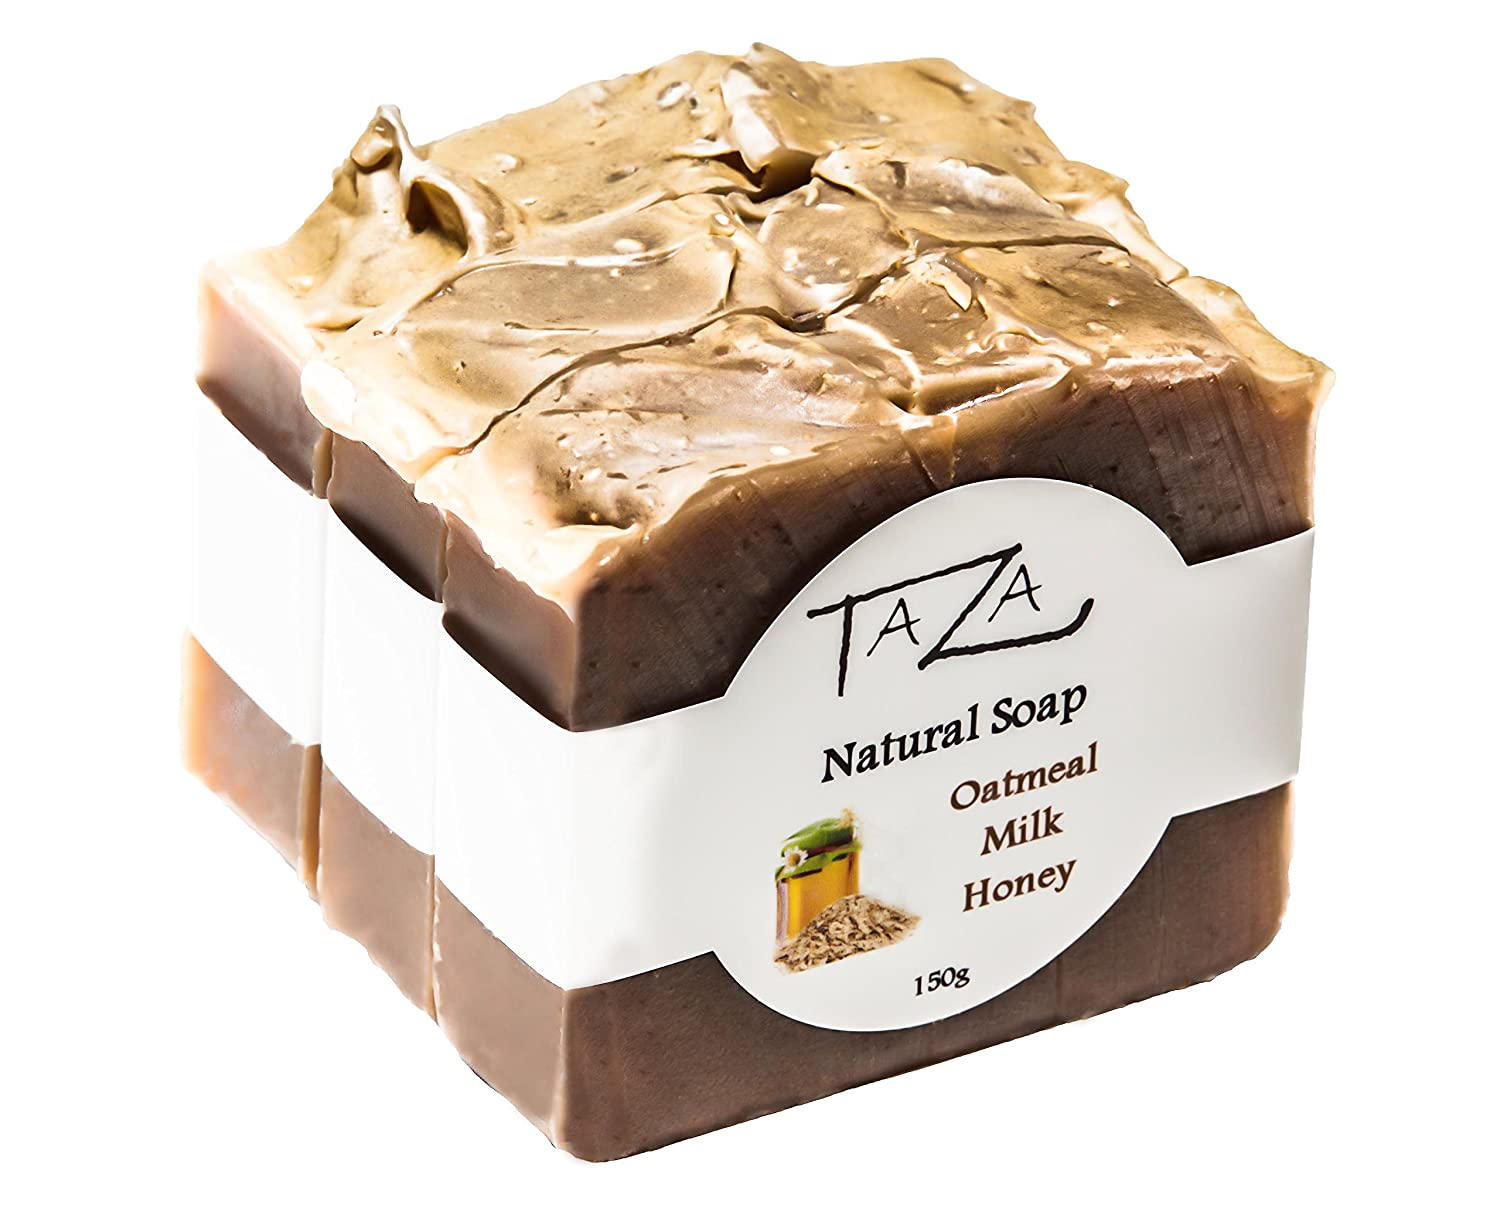 Premium Taza Oatmeal Milk & Honey Natural Soap (Pack of 3) Each 5.3 oz (150 g) ♦ Radiant Skin ♦ Contains: Coconut, Olive, and Palm Fruit Oils, Mango Seed Butter, Kaolin Clay, Oats, Honey, Goats Milk Priya Spa